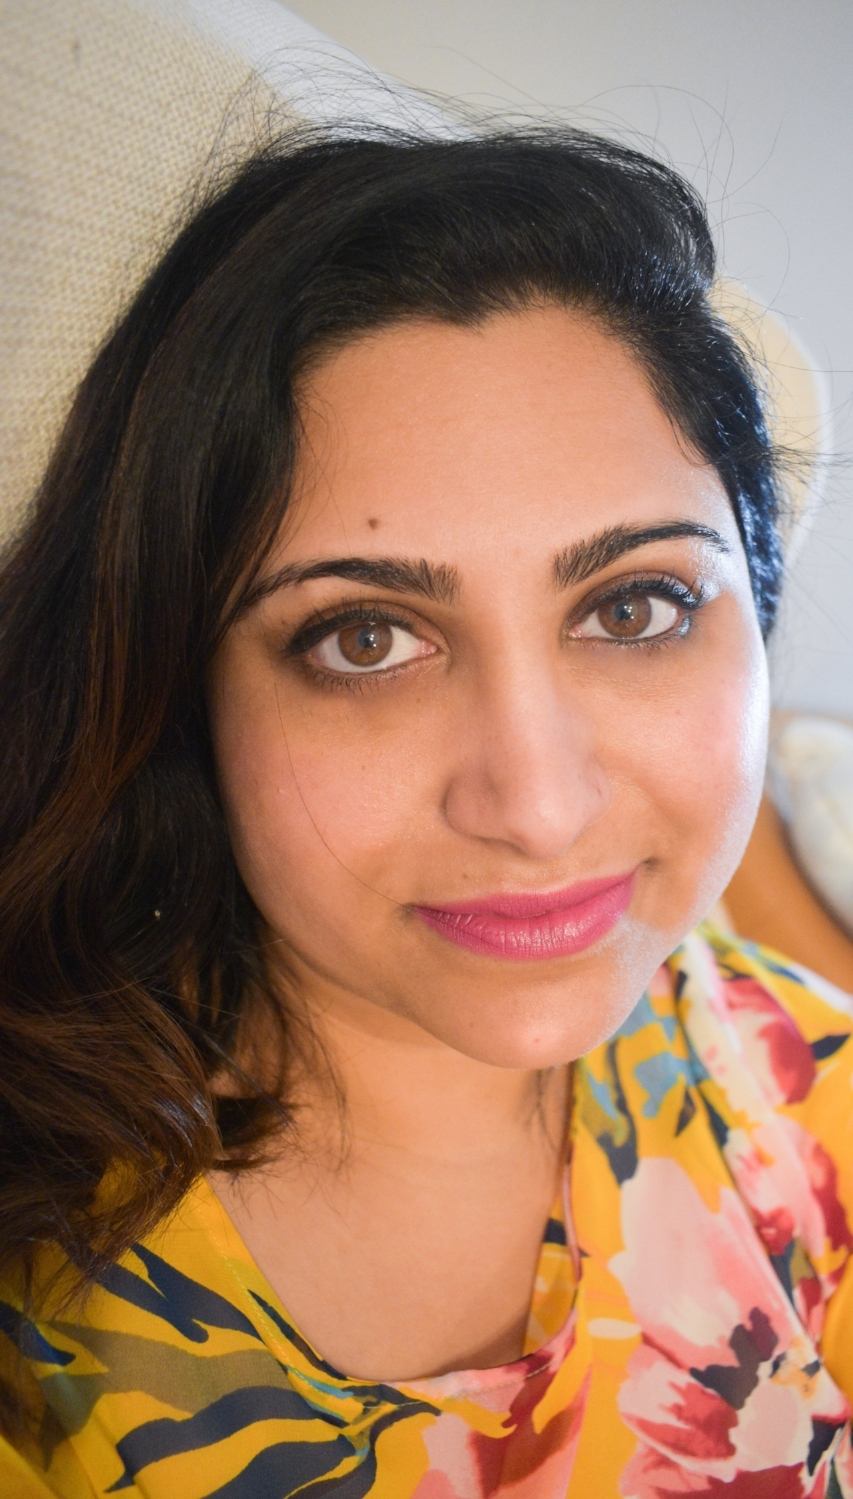 Fiza Pirani - Web producer and writer for The Atlanta Journal-Constitution. Editor for AJC's Pulse Magazine, a digital lifestyle publication for nurses in the Southeast. Also currently investigating immigrant and refugee mental health stigma and health care access as a 2018 recipient of the Rosalynn Carter Fellowship for Mental Health Journalism.